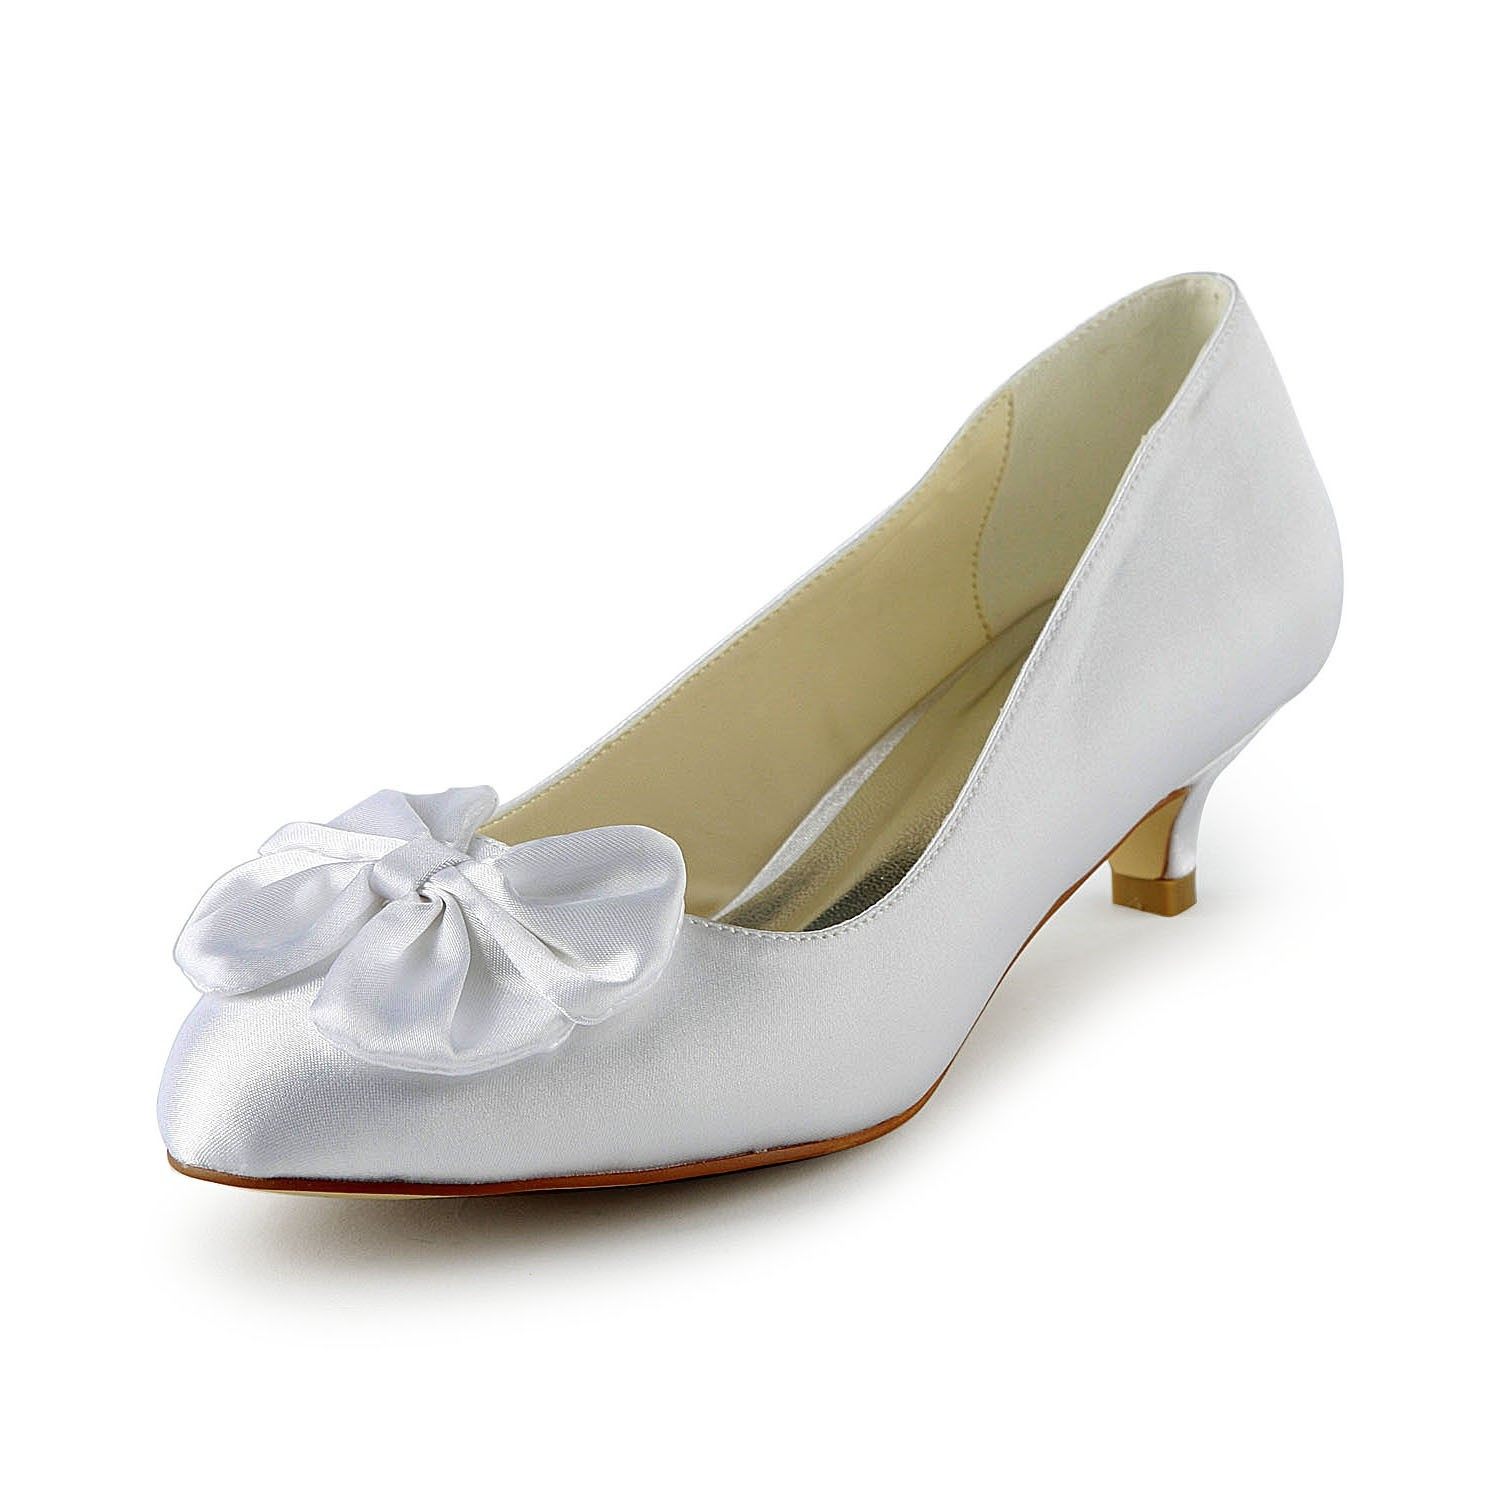 Women S Satin Kitten Heel Pumps With Bowknot White Wedding Shoes